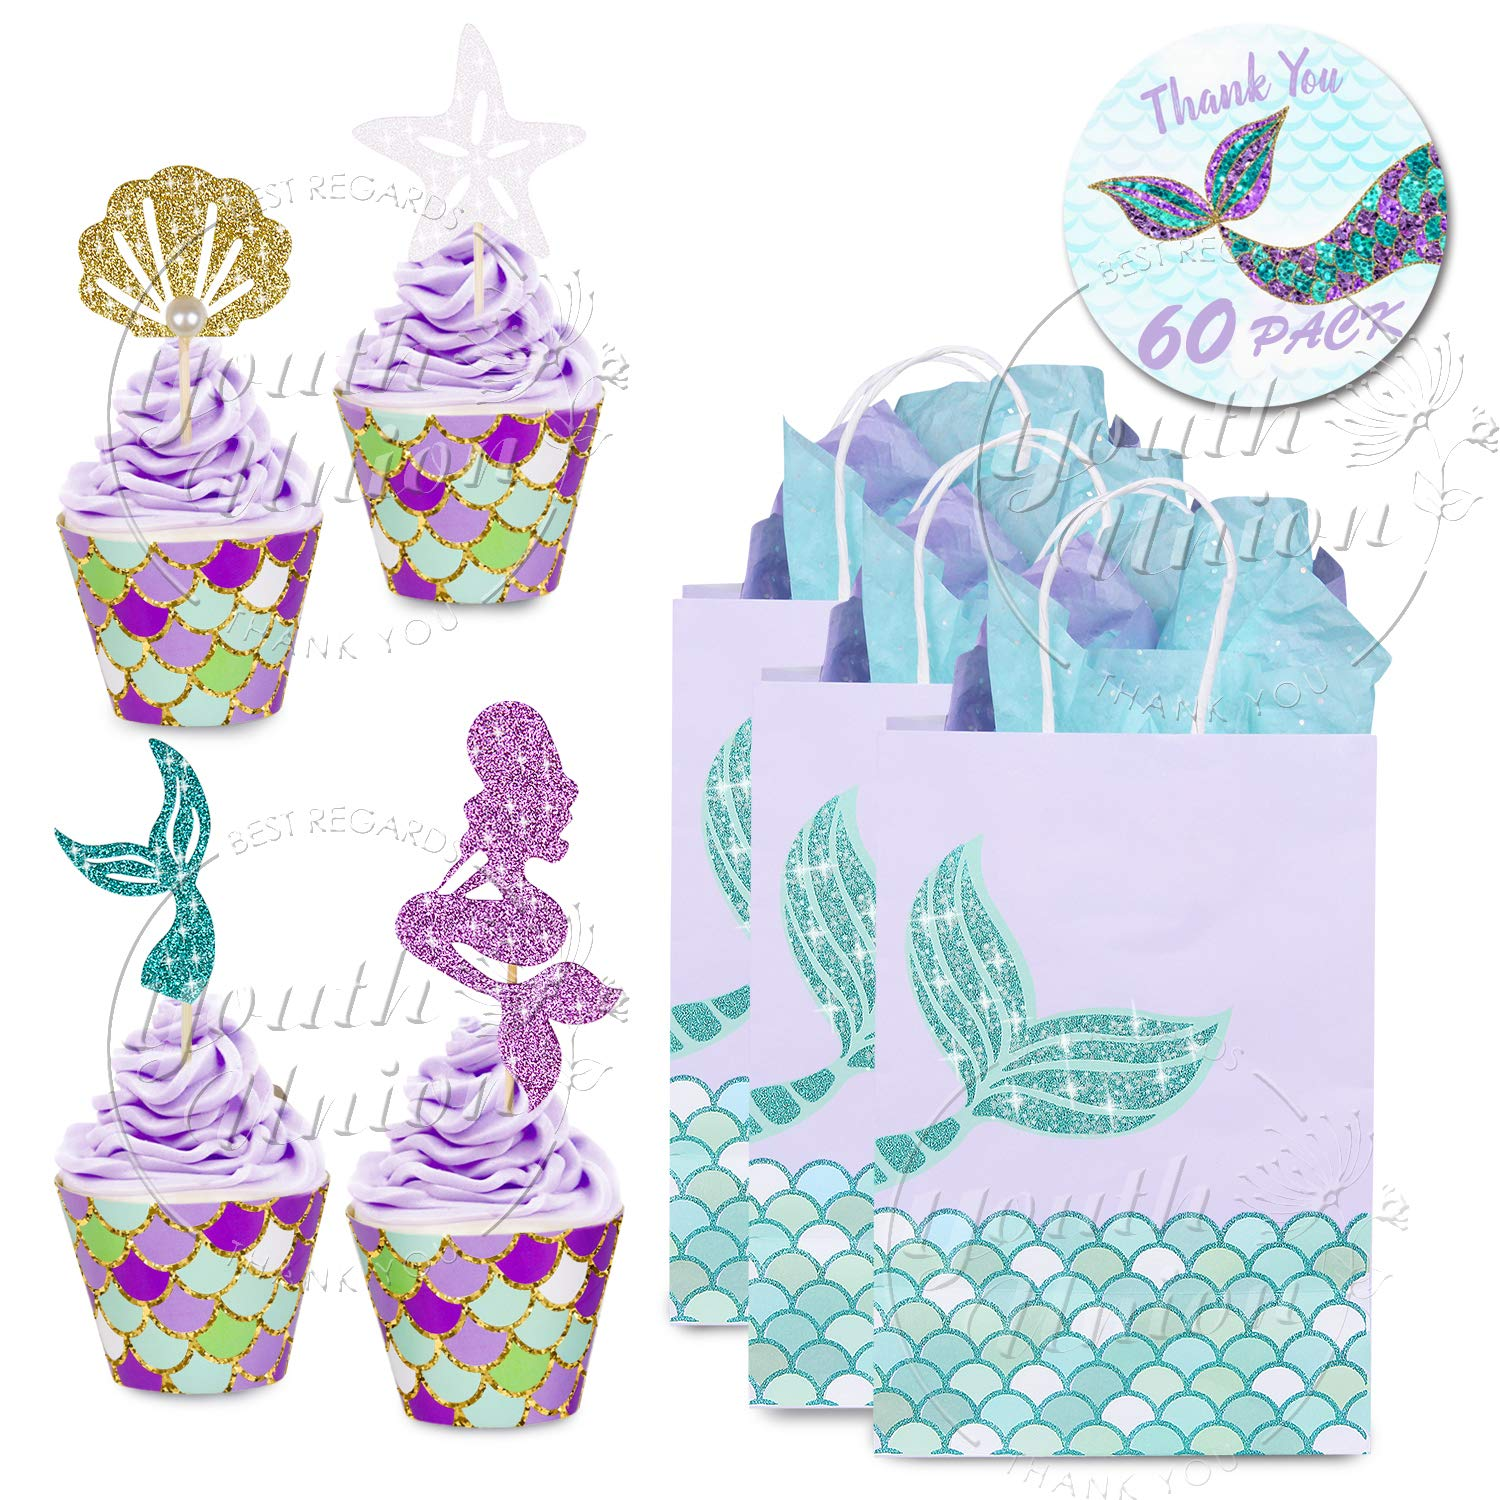 YOUTH UNION 60 Pack Mermaid Cupcake Toppers & Wrappers & Mermaid Gift Bags for Baby Shower Birthday Party Supplies Cake Decoration